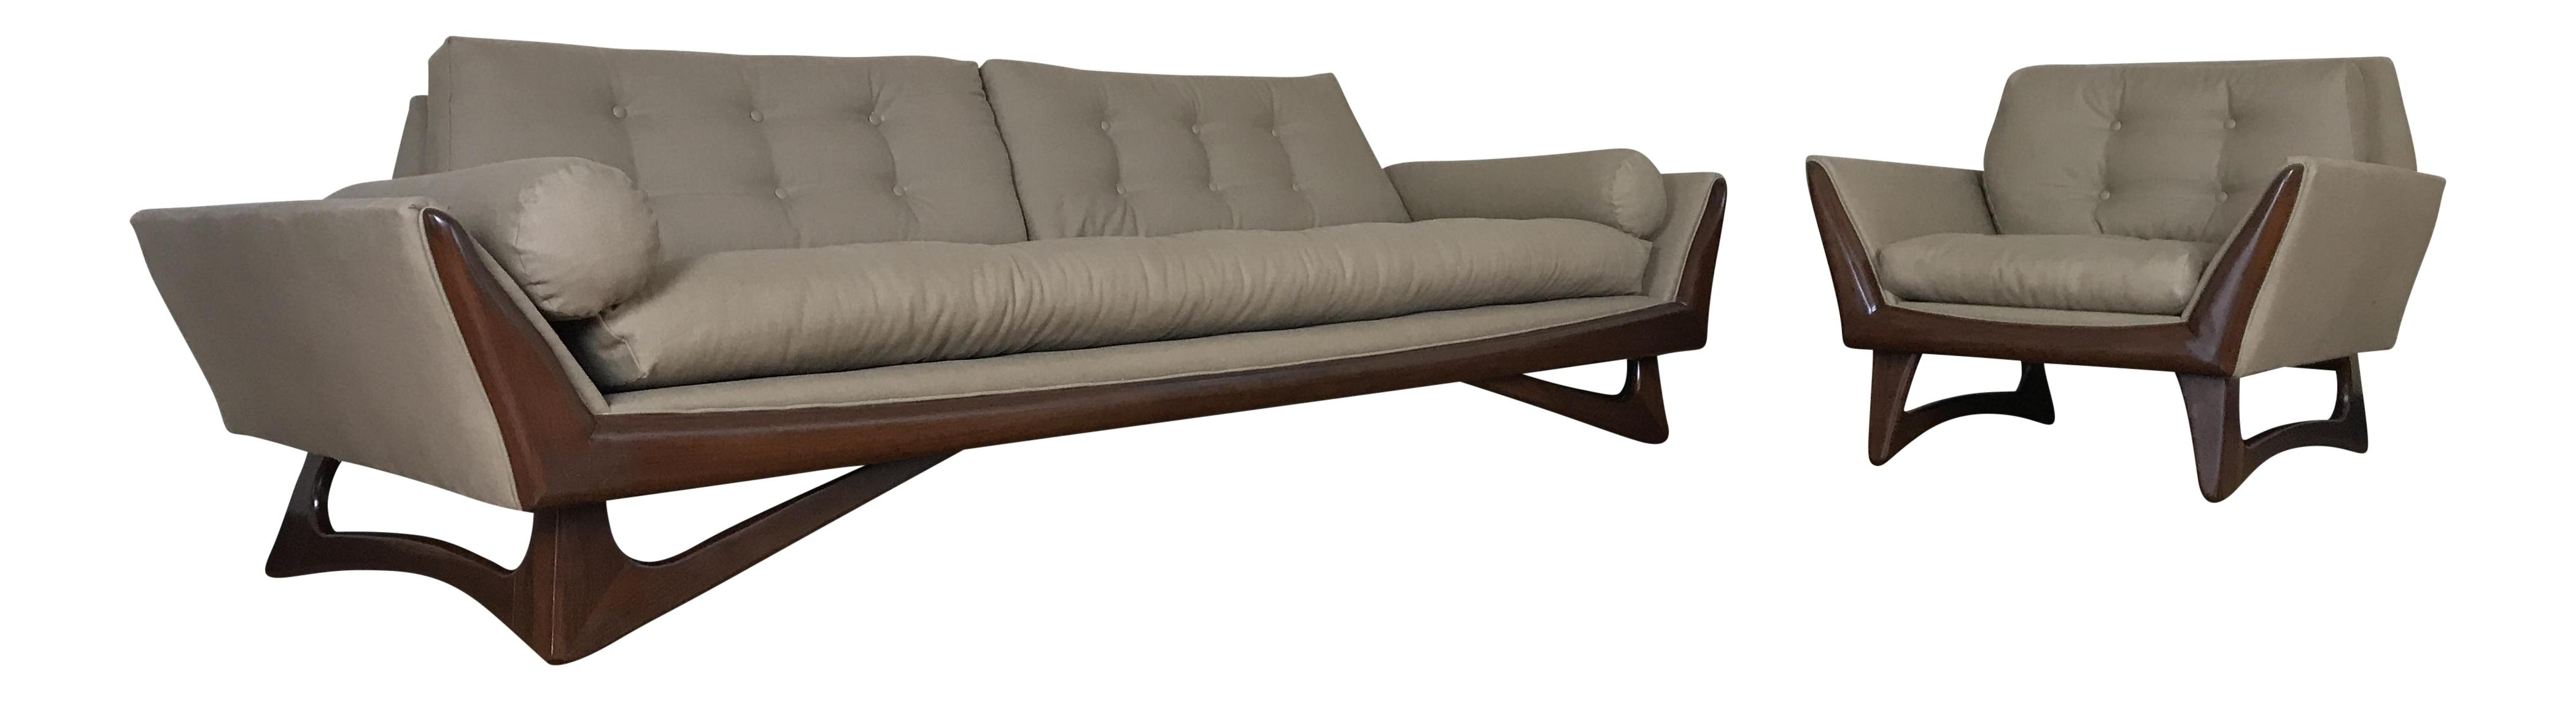 Sofas Center : Adrian Pearsall Sofa For Craft Associates Inc Within Unusual Sofa (Image 7 of 20)